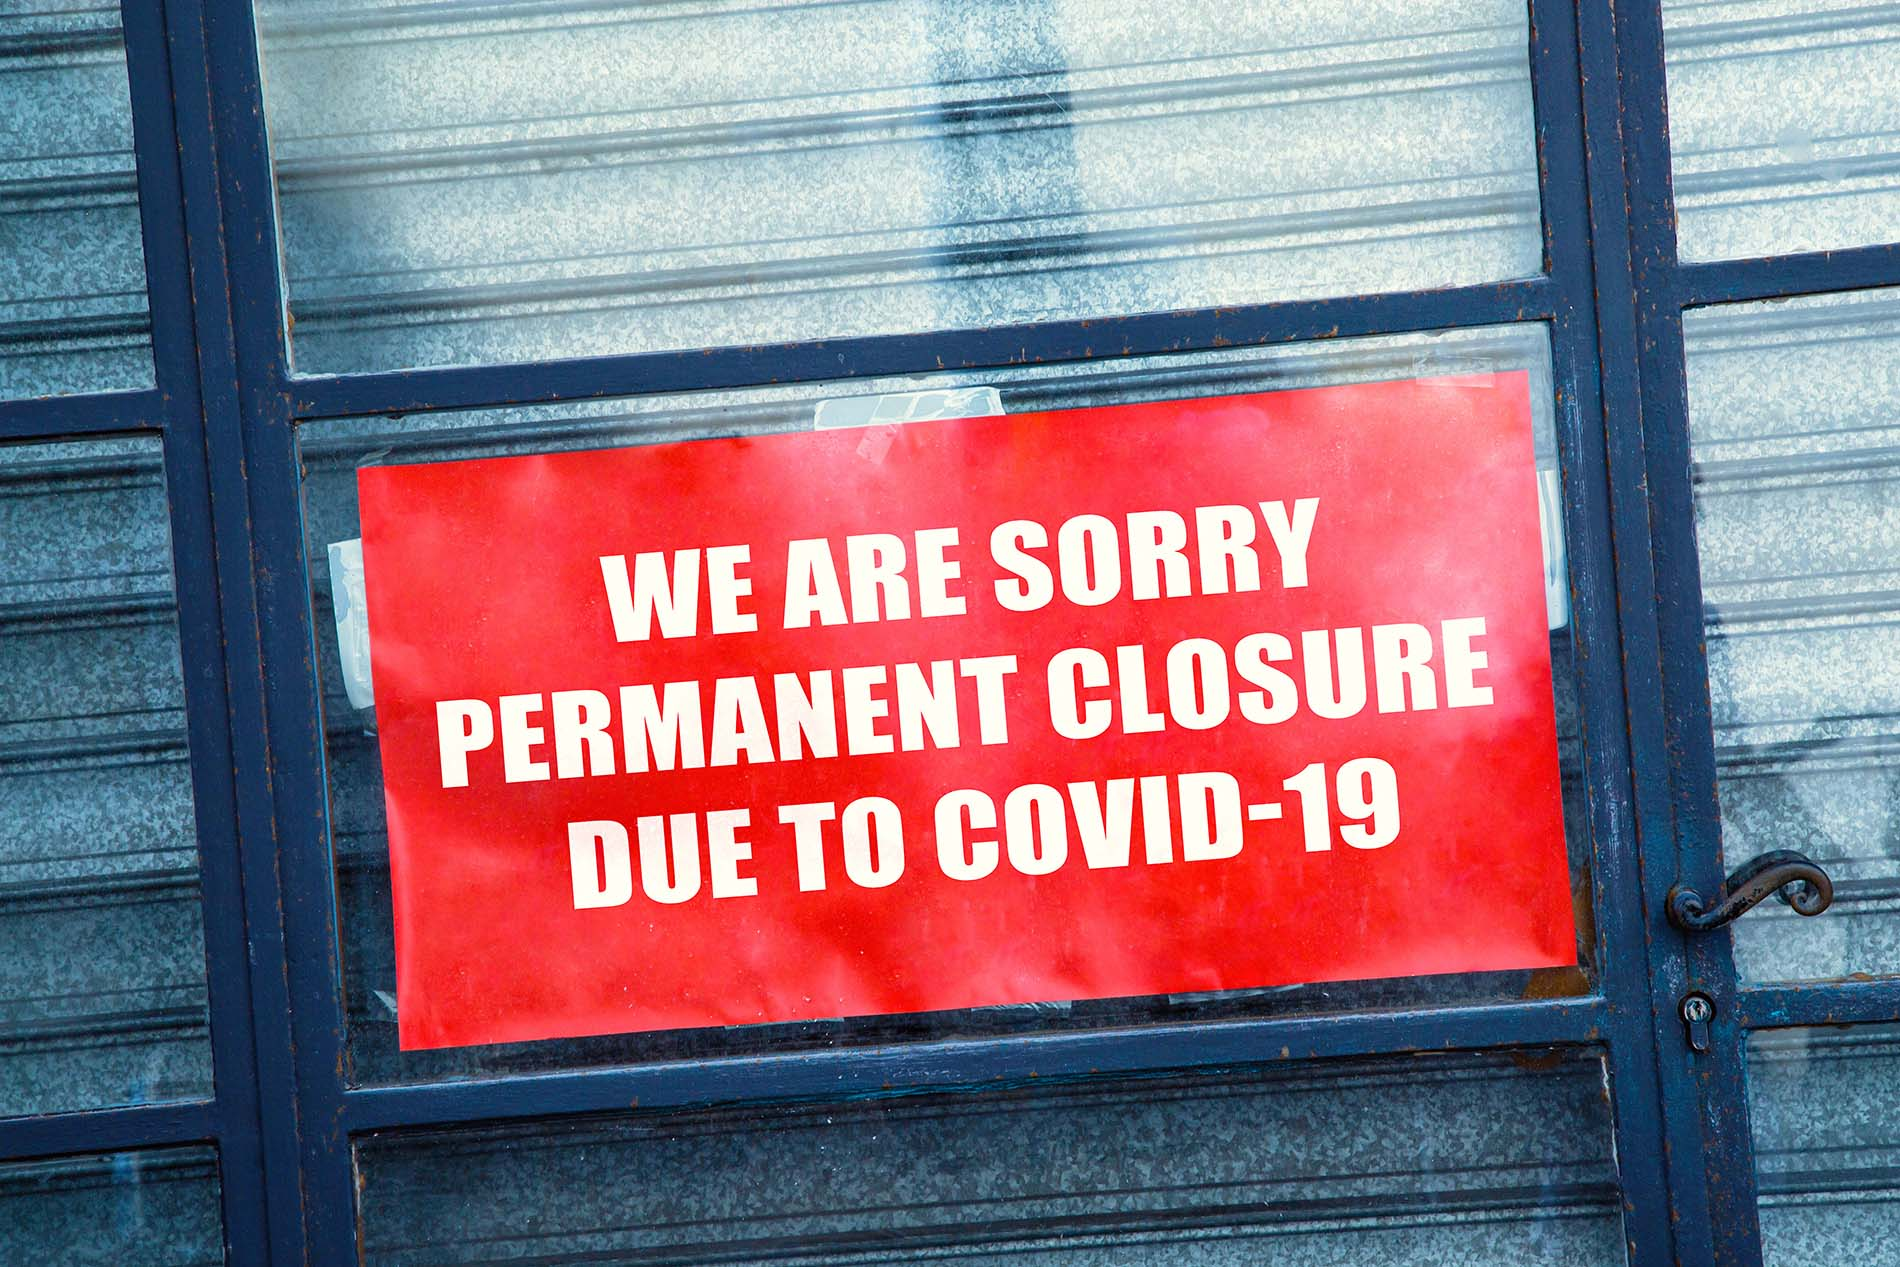 We are sorry permanent closure due to covid-19